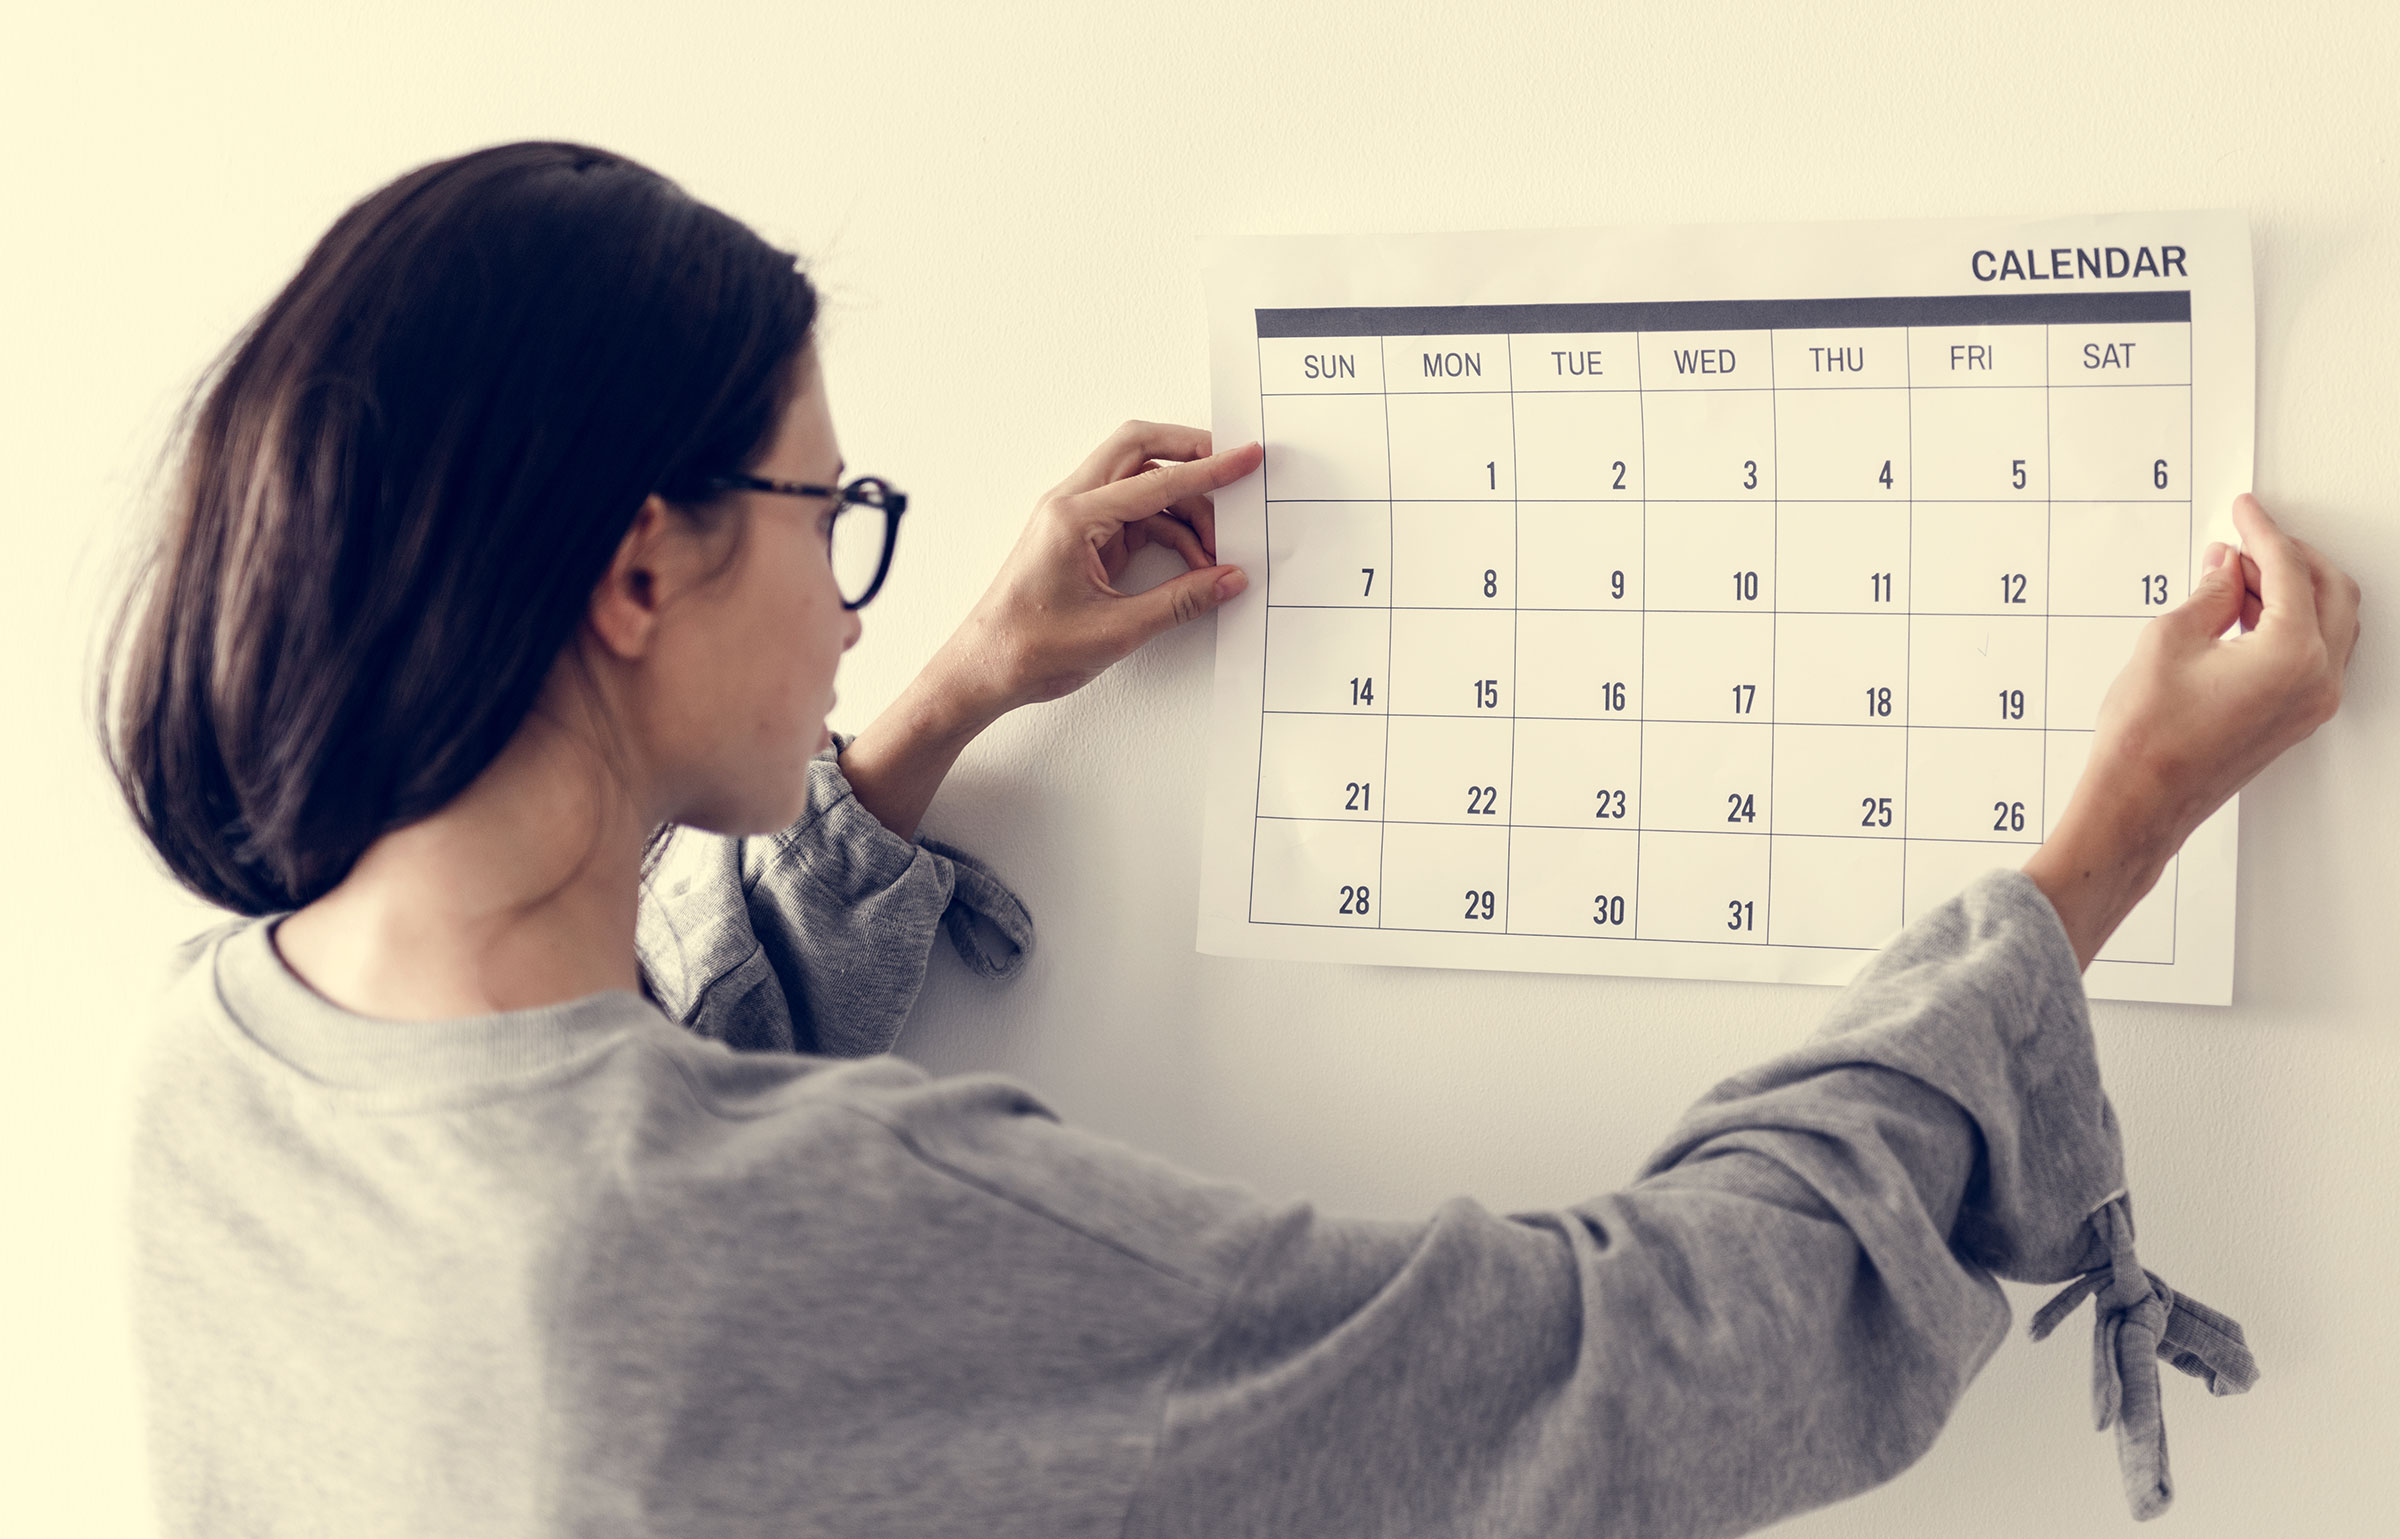 Woman wearing eye glasses hangs up a calendar on her wall